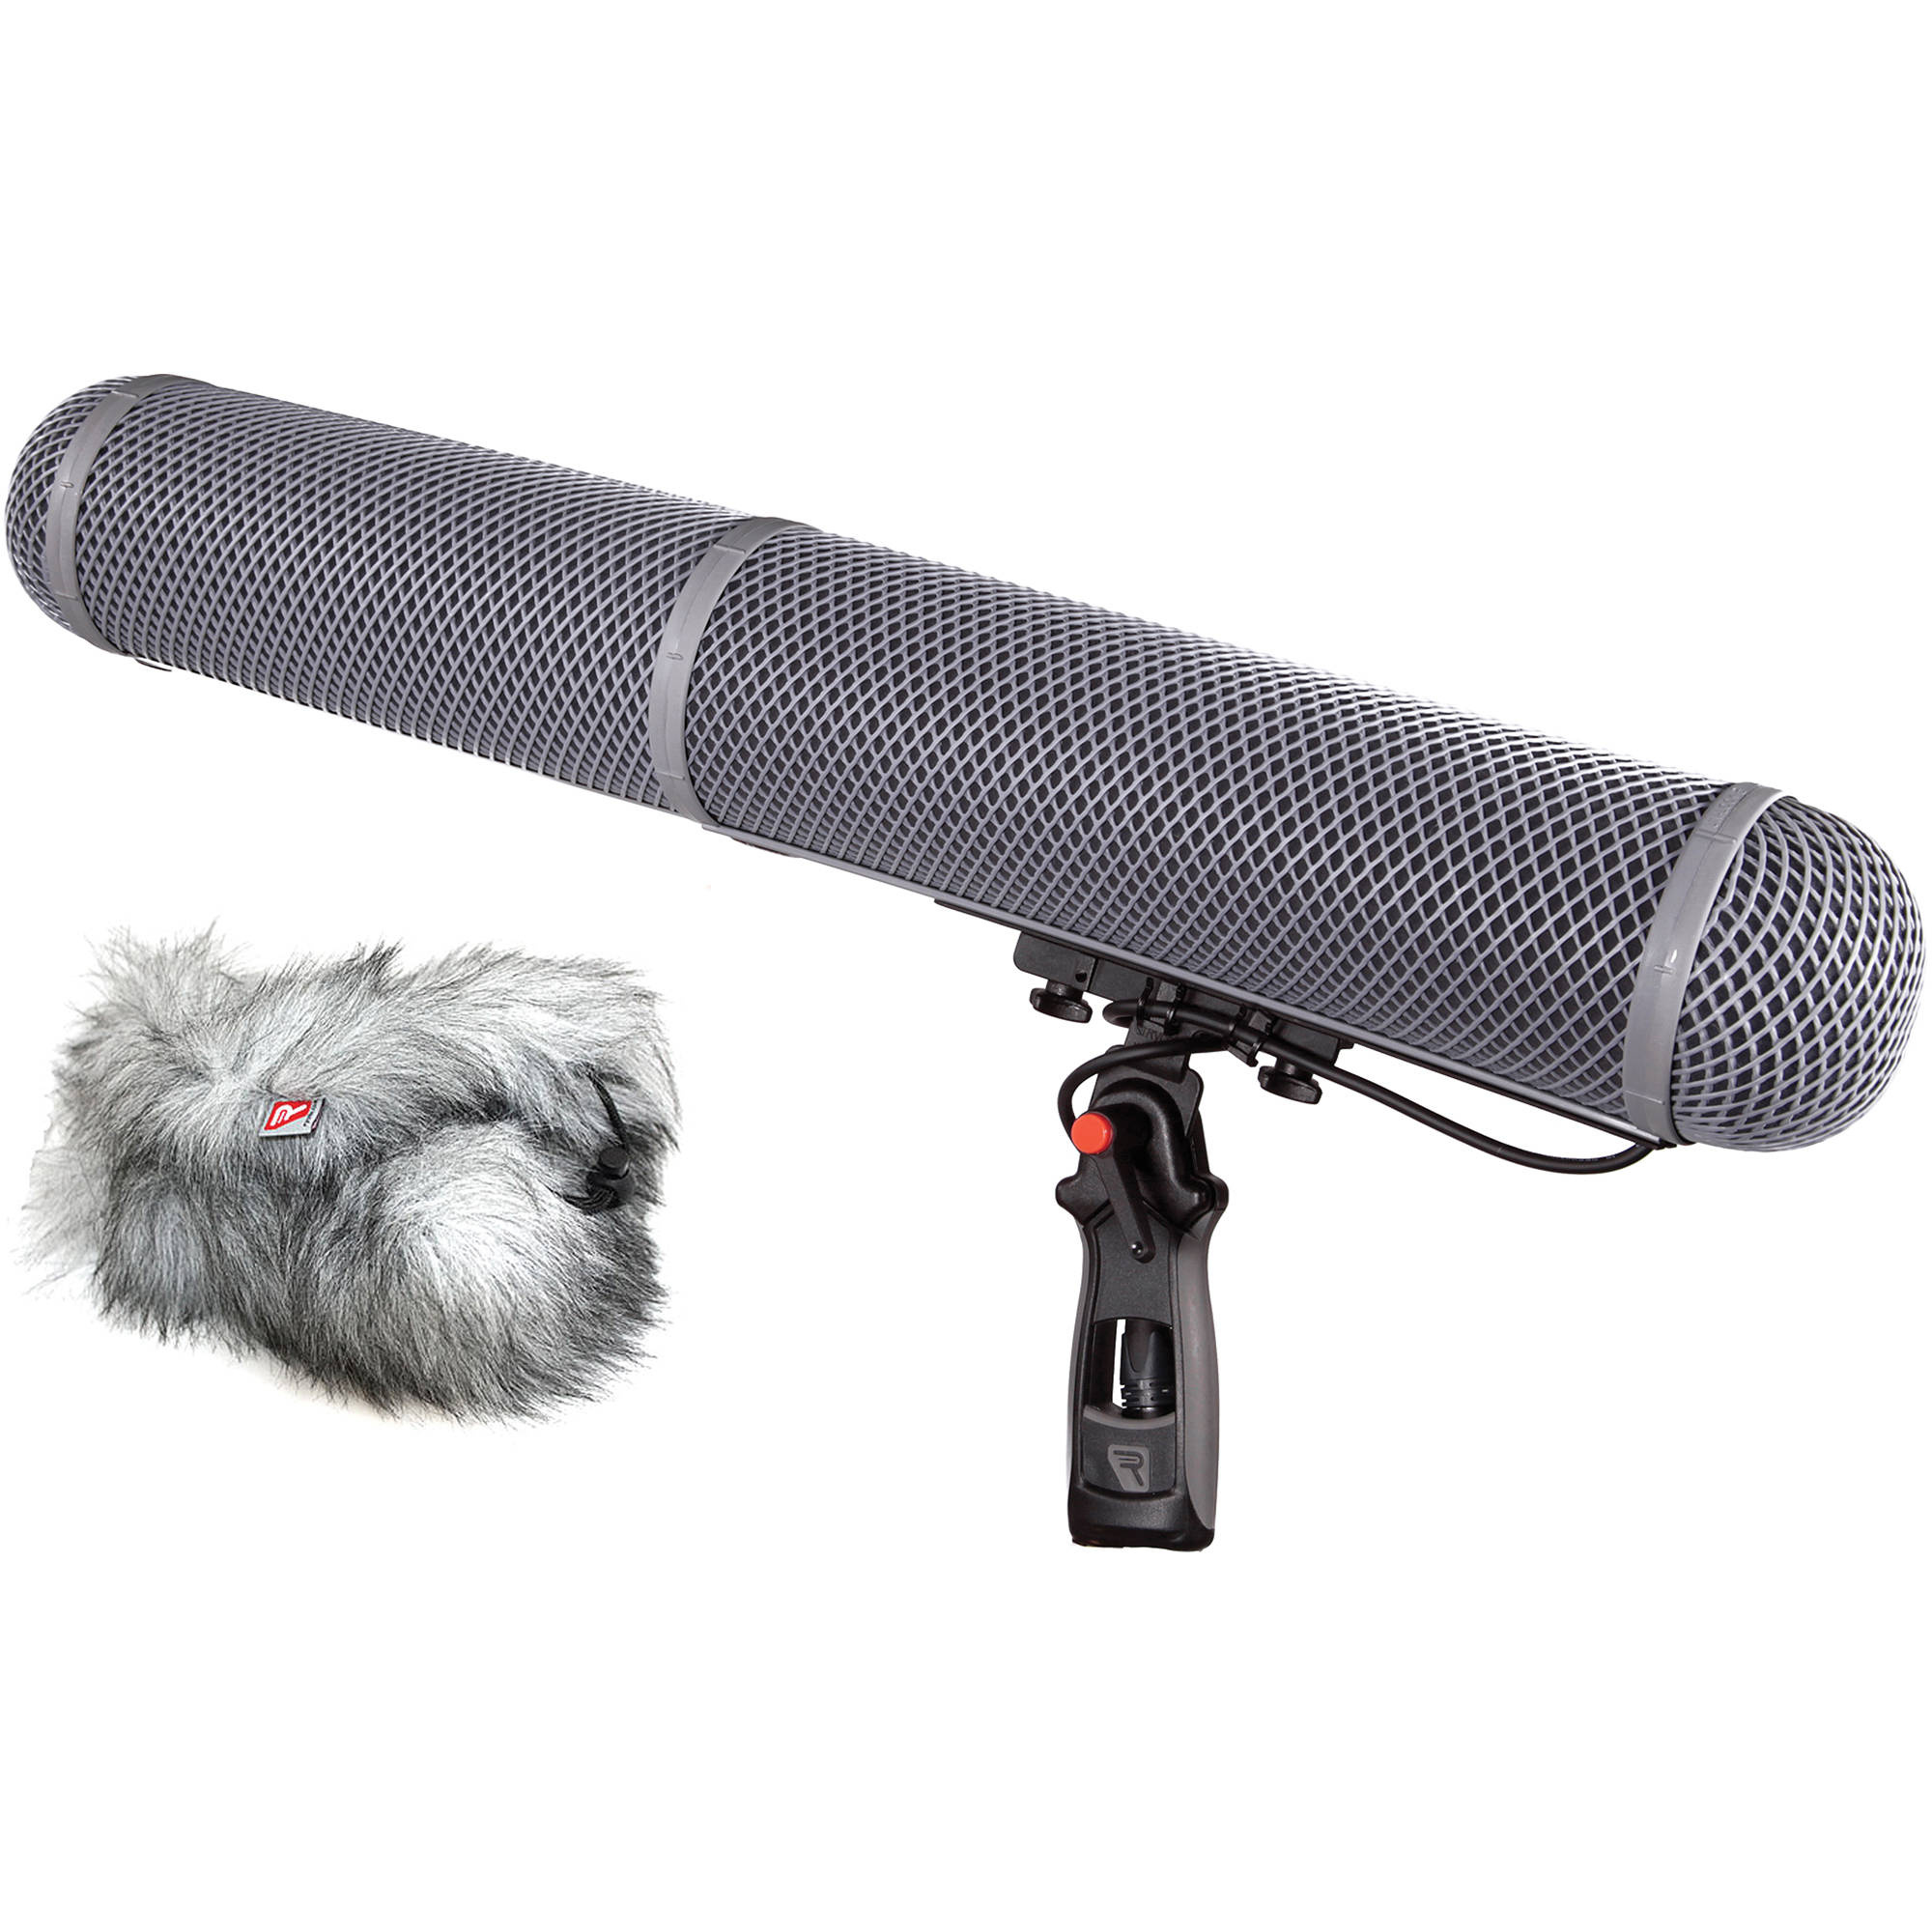 Rycote - Windshield Kit 8